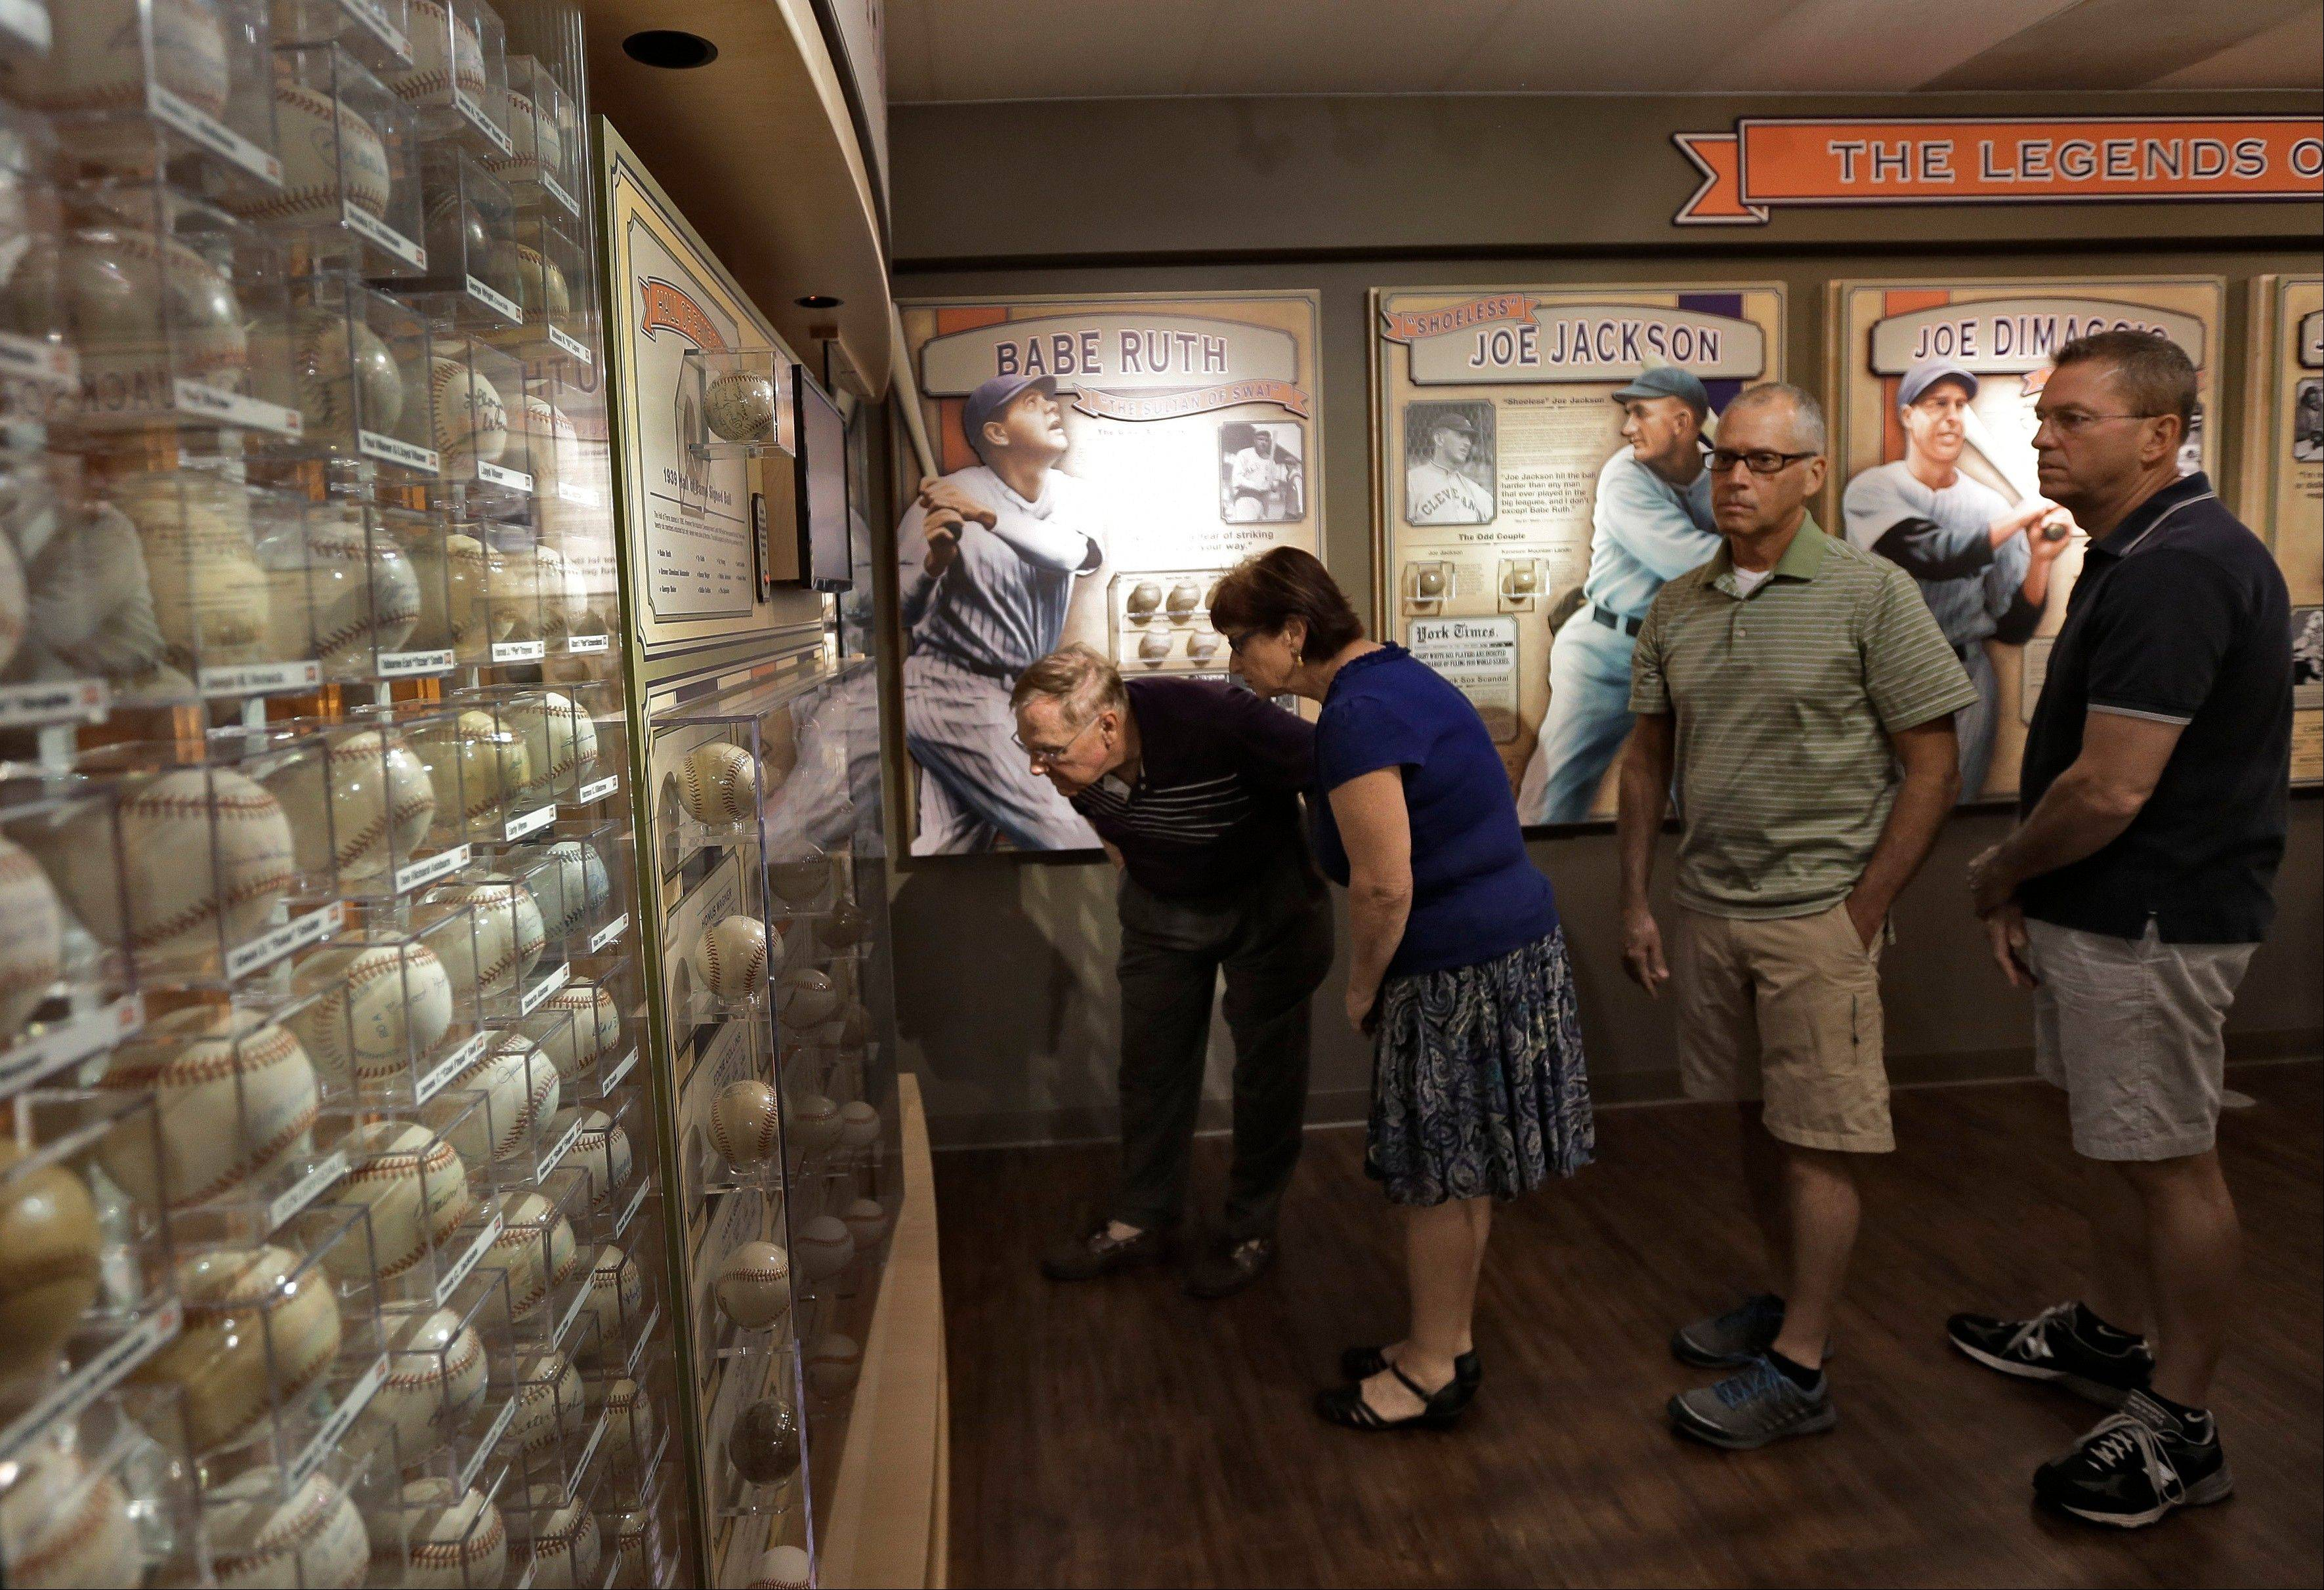 Visitors to the St. Petersburg Museum of History view some of Dennis Schrader's autographed baseballs Tuesday in St. Petersburg, Fla. Schrader now has more than 4,600 signed baseballs, and that obsession is now on display at the museum.